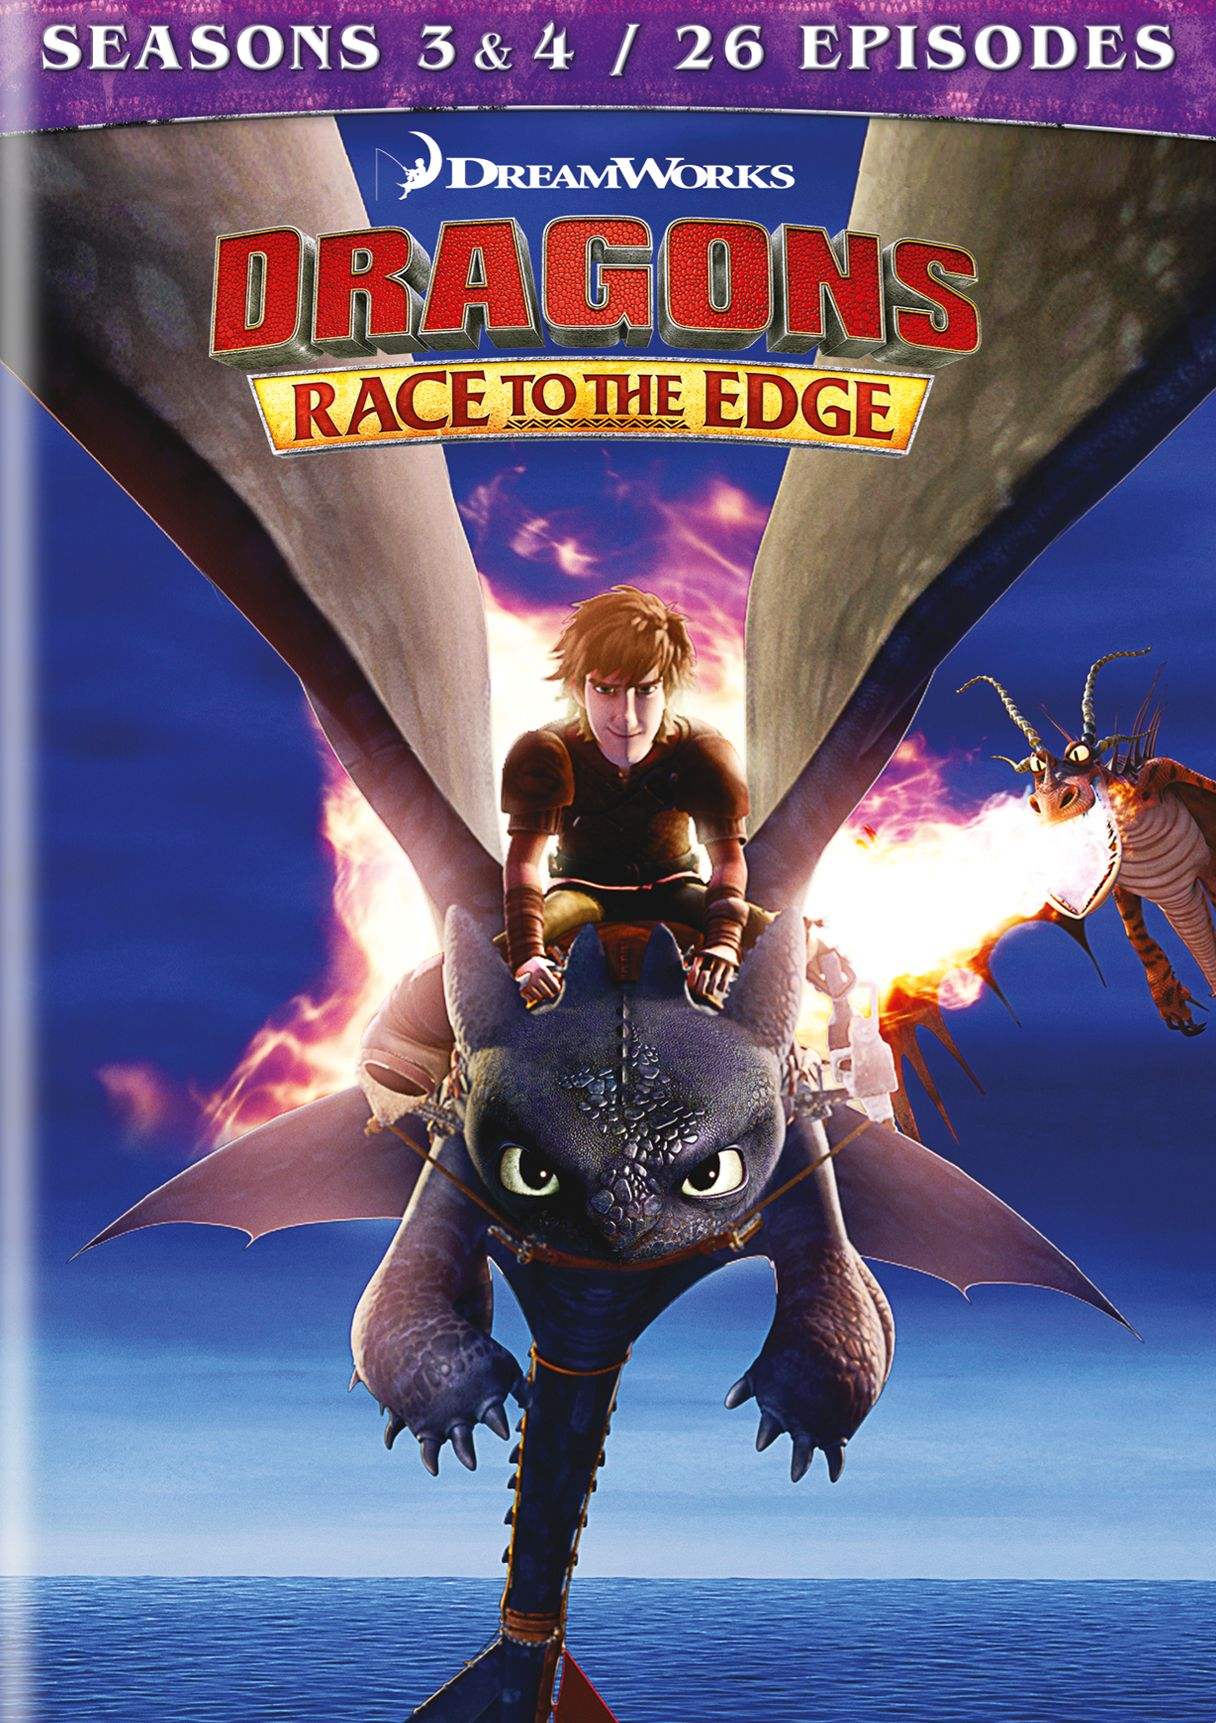 Dragons Race To The Edge Seasons 3 4 Dvd Best Buy In 2020 Dragons Edge How To Train Your Dragon Dreamworks Dragons